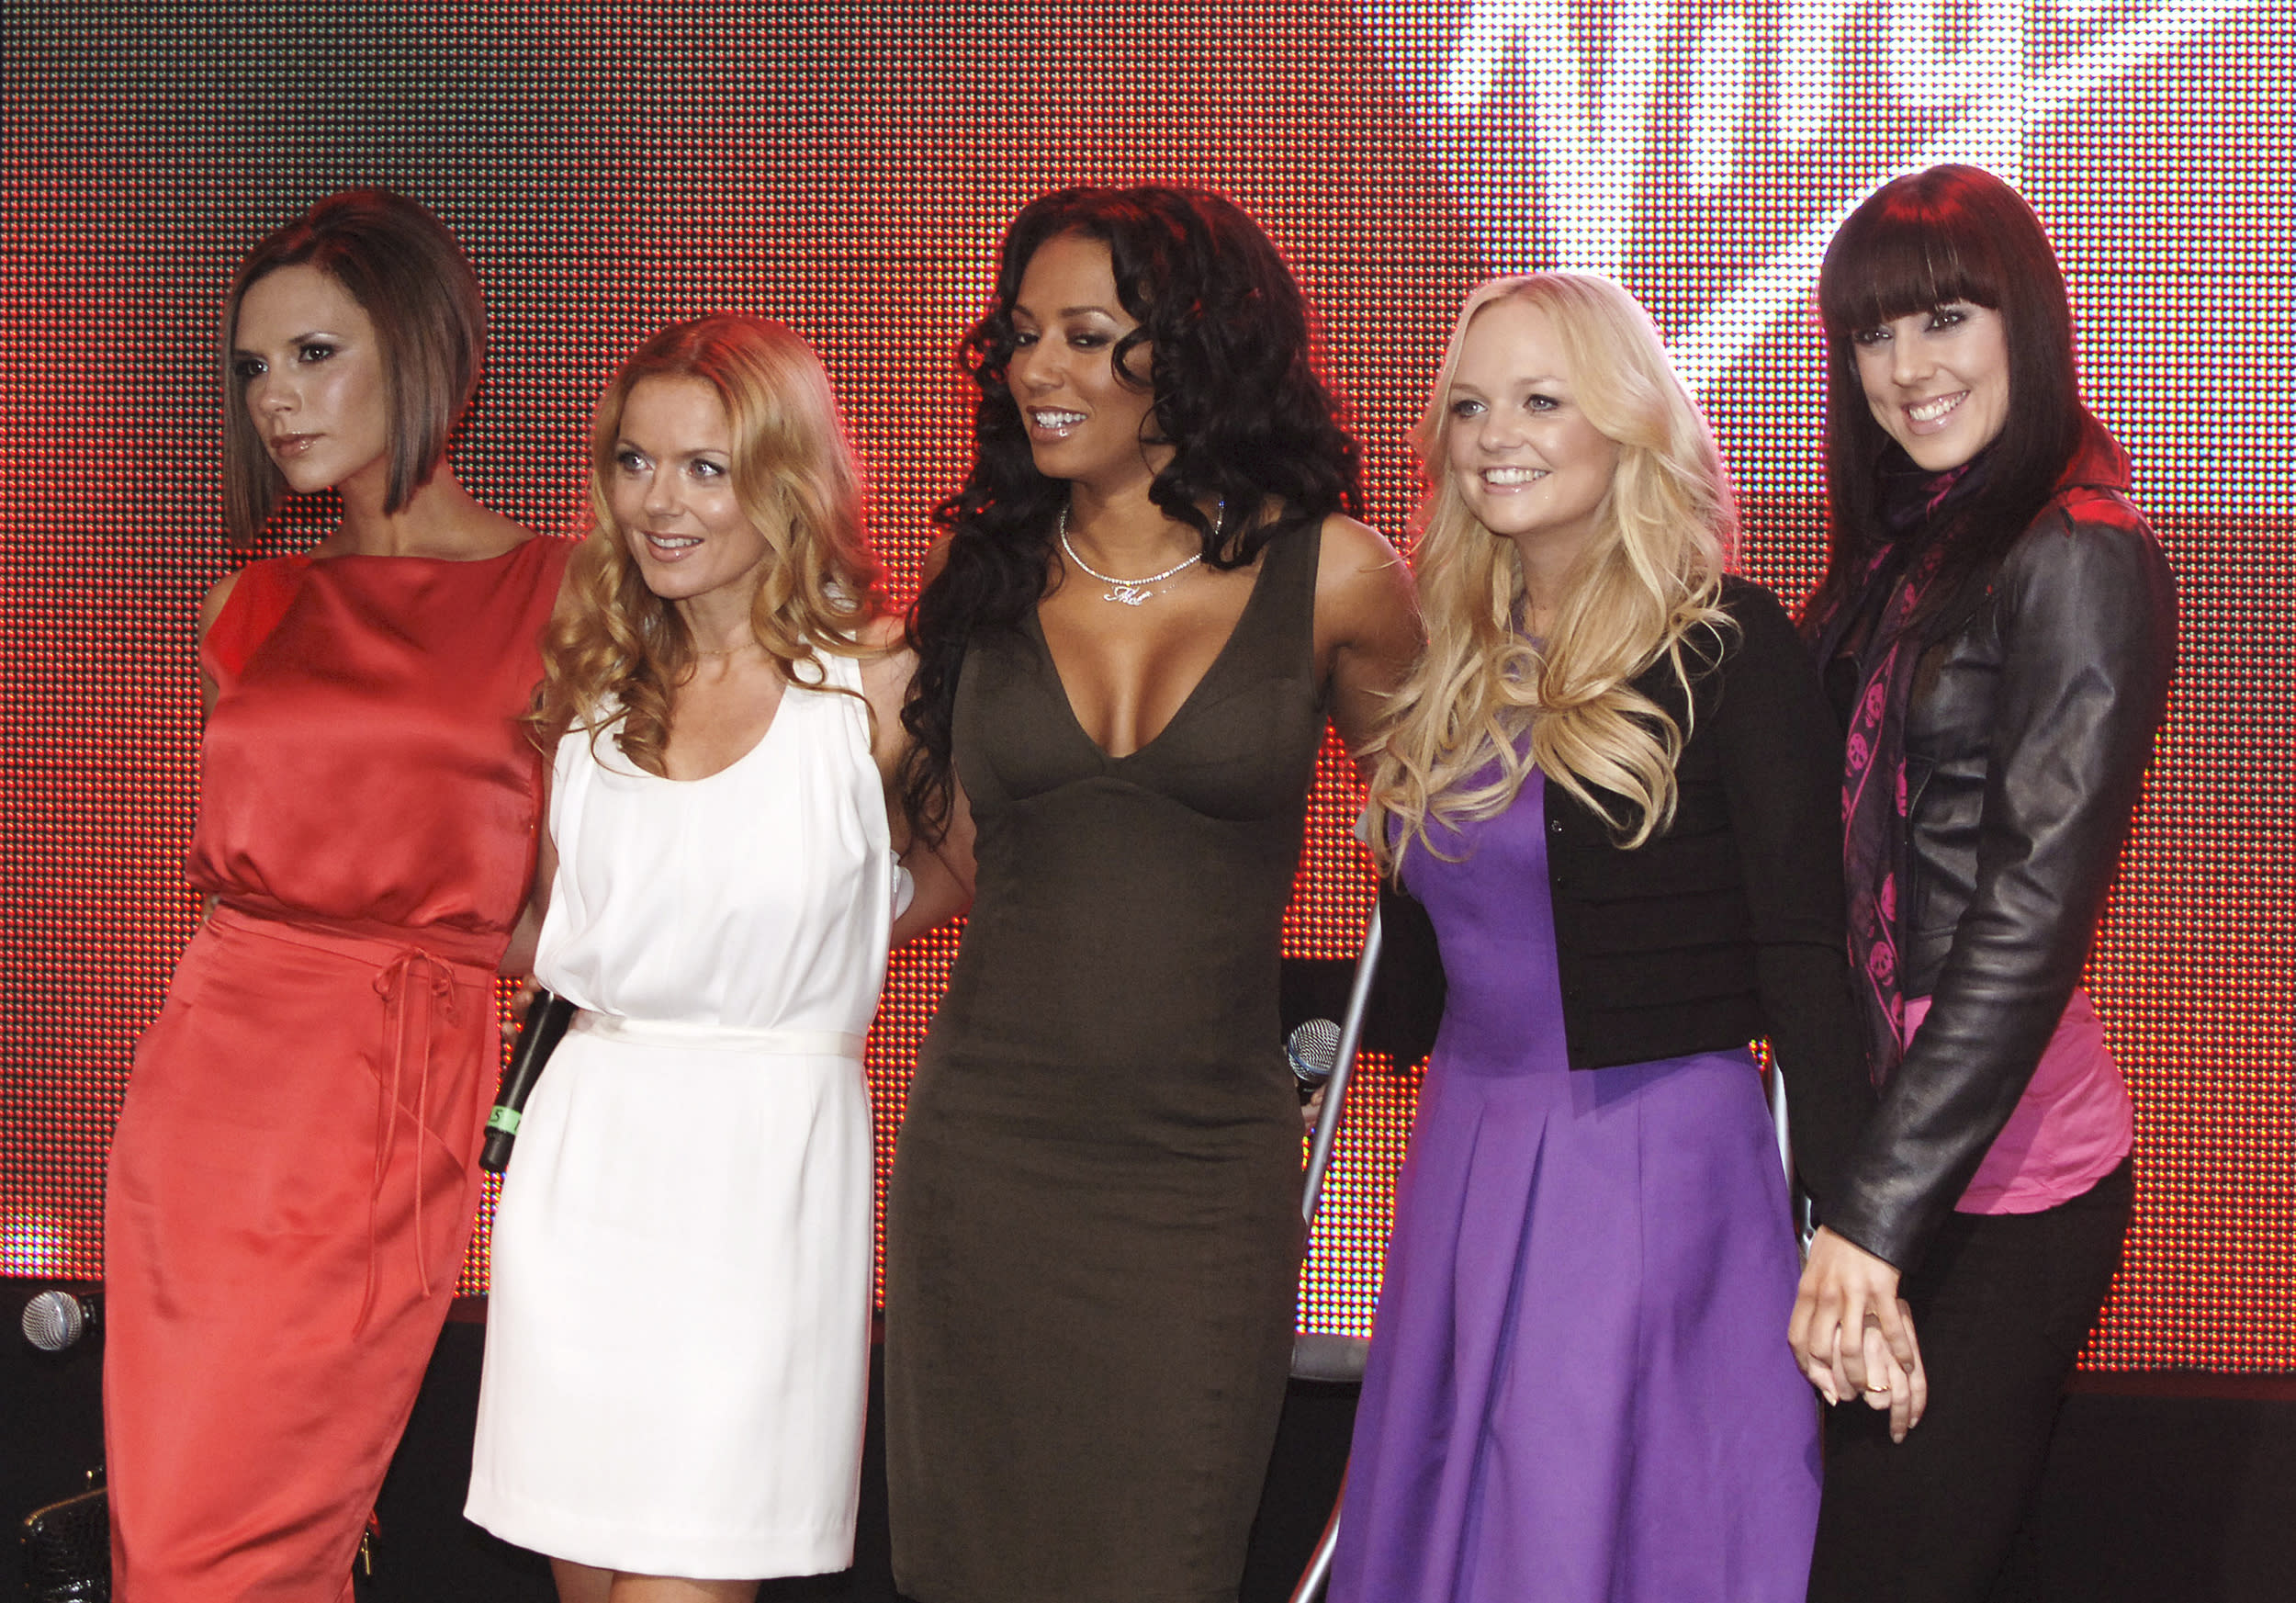 British group Spice Girls (L-R) Victoria Beckham, Geri Halliwell, Mel B, Emma Bunton and Mel C pose at the launch of the new Terminal 3 at Heathrow airport, London, December 13, 2007. REUTERS/Anthony Harvey  (BRITAIN)